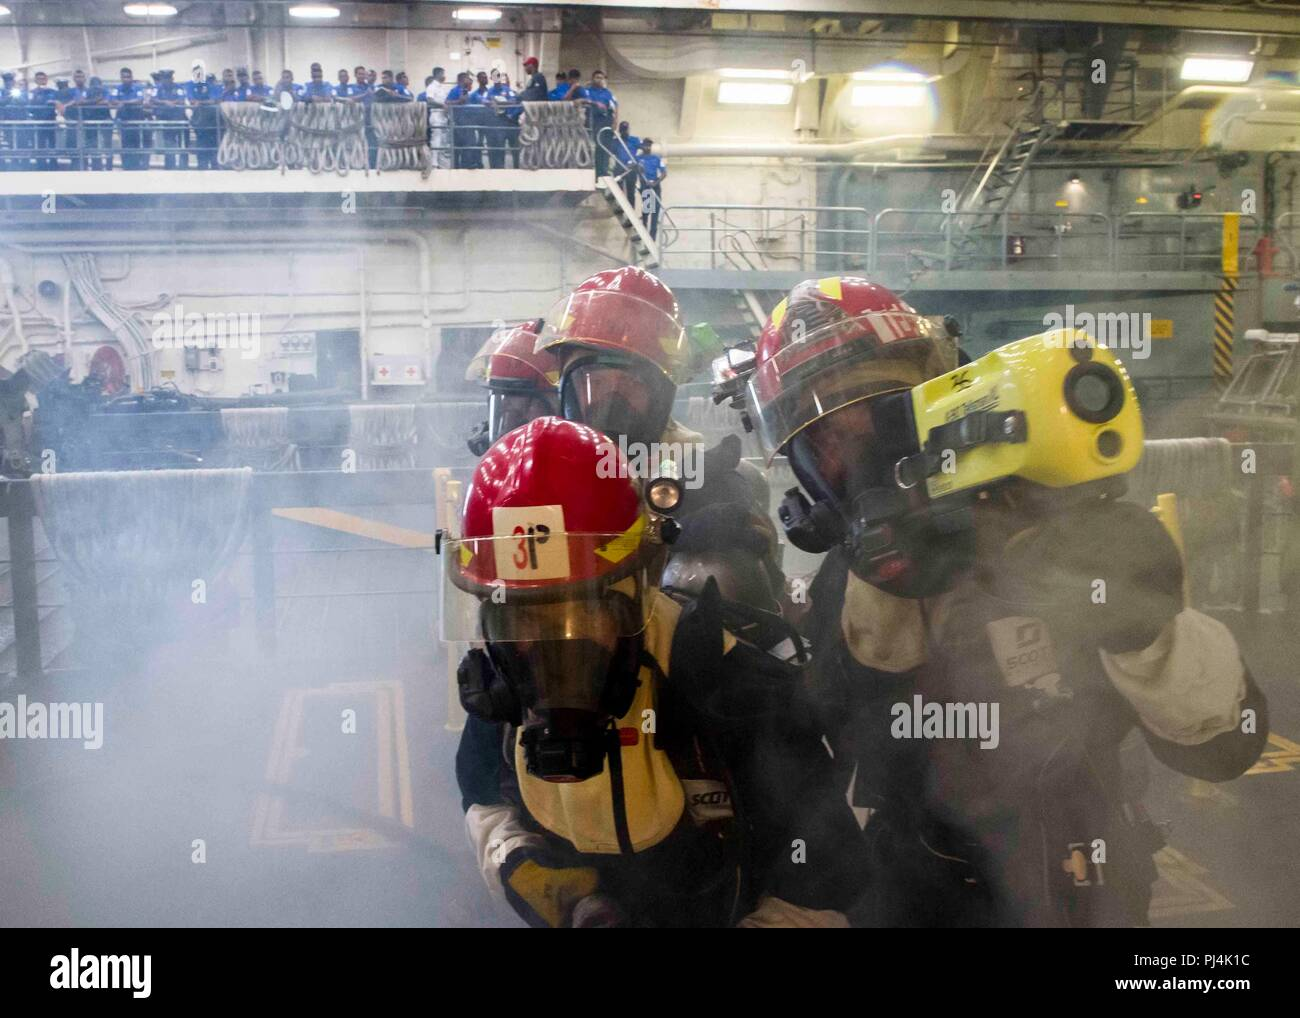 180826-N-PH222-0462 TRINCOMALEE, SRI LANKA (August 26, 2018) Sailors aboard San Antonio-class amphibious transport dock USS Anchorage (LPD 23) demonstrate fire-fighting techniques in the well deck to the Sri Lanka navy sailors during a regularly scheduled deployment of the Essex Amphibious Ready Group (ARG) and the 13th Marine Expeditionary Unit (MEU). Anchorage and the embarked Marines of the 13th MEU are conducting a theater security cooperation exercise with the Sri Lankan navy and Marines. Part of a growing U.S.-Sri Lanka naval partnership, the exercise is also an opportunity for U.S. Seve - Stock Image